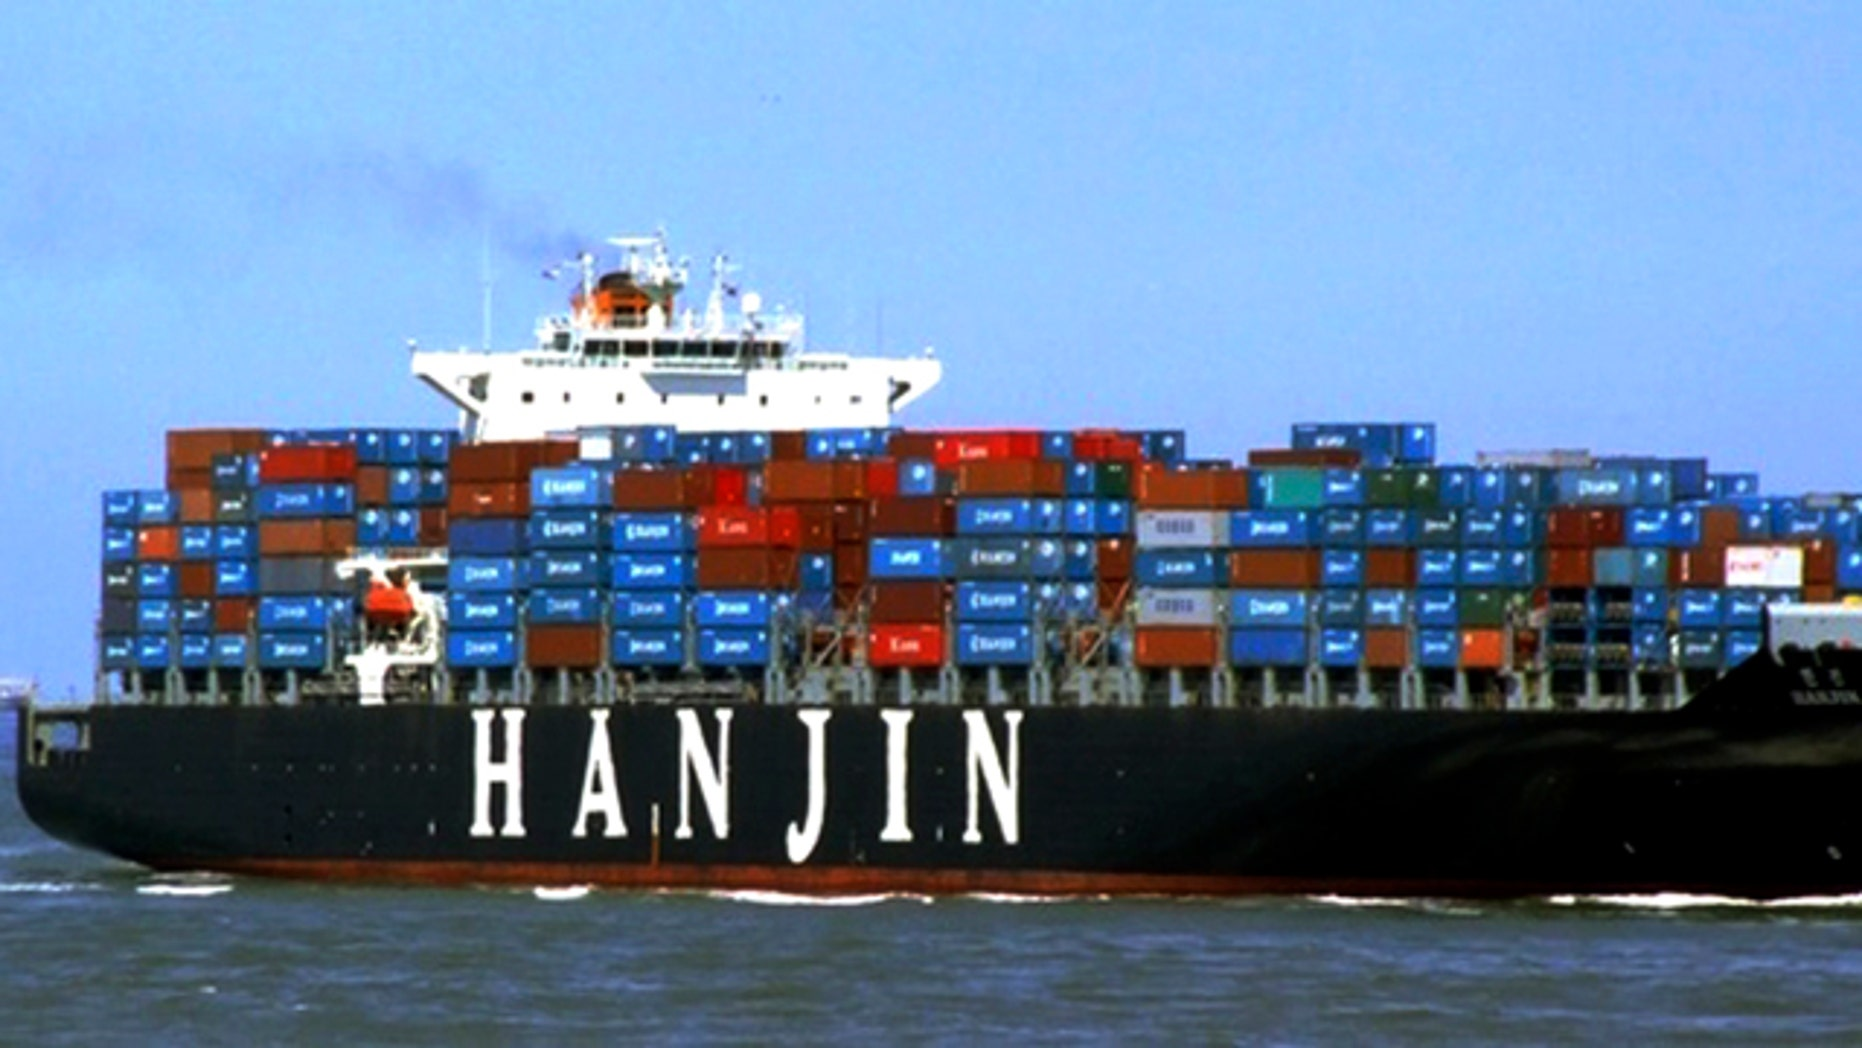 """This undated photo released by Hanjin Shipping Co., shows the container ship """"Hanjin Tianjin"""" of South Korea. South Korea said that the ship """"Hanjin Tianjin"""" may have been hijacked by pirates in the Indian Ocean. The Ministry of Foreign Affairs and Trade says Hanjin Shipping Co. lost contact with the ship Thursday morning, and the South Korean warship is on its way to the area. (AP)"""